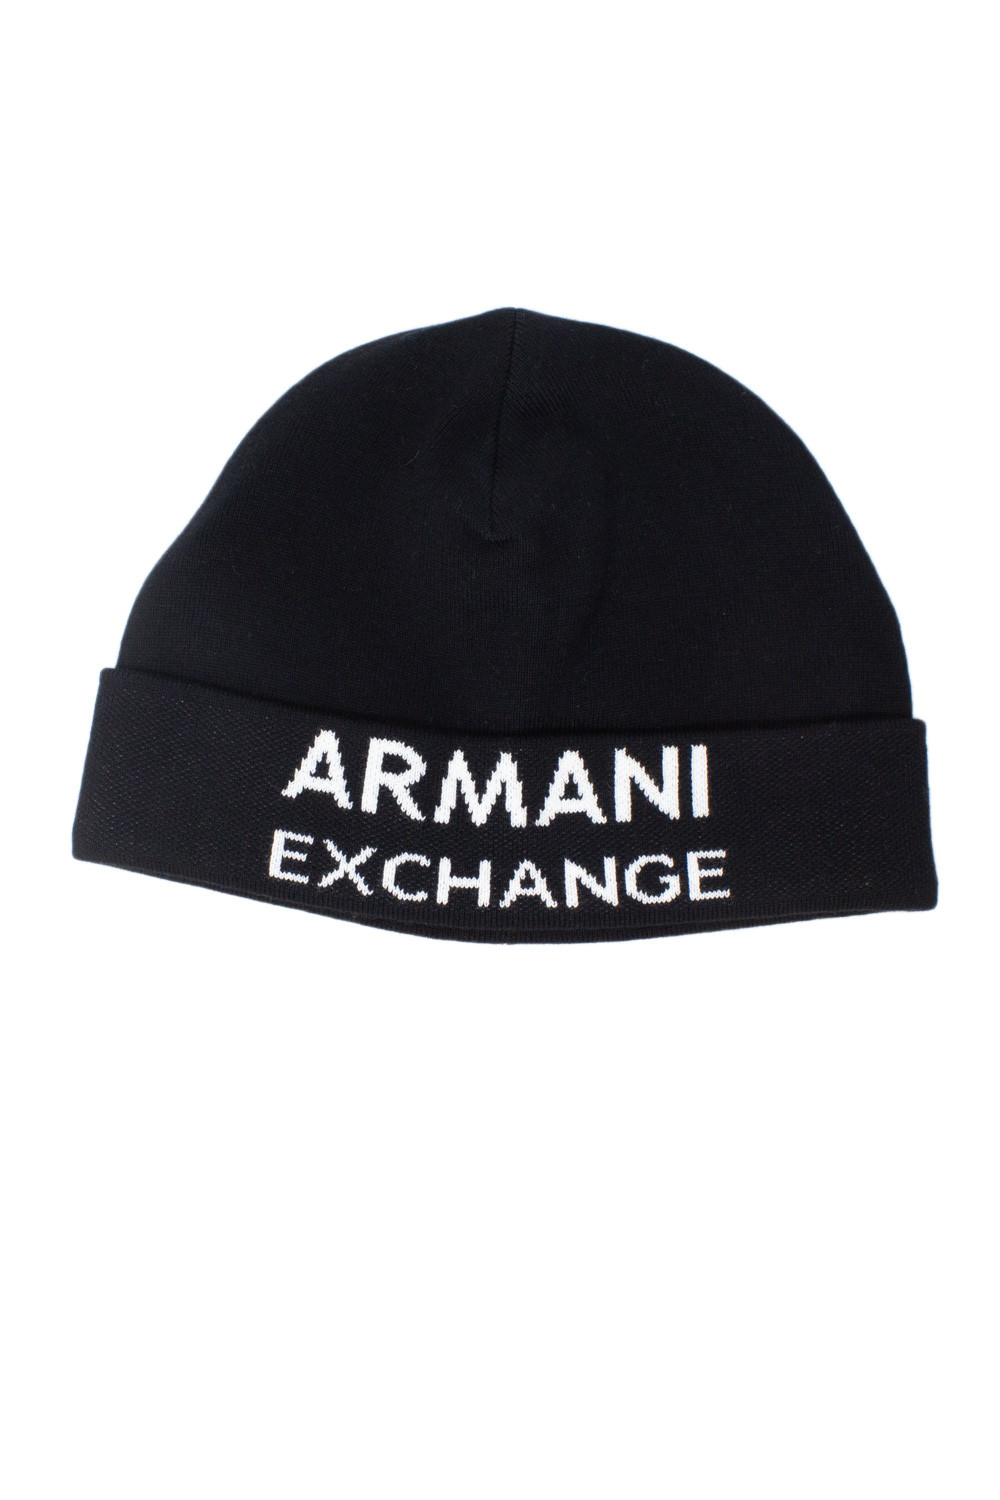 armani exchangeMarchio: Armani Exchange; Genere: Uomo; Tipologia: